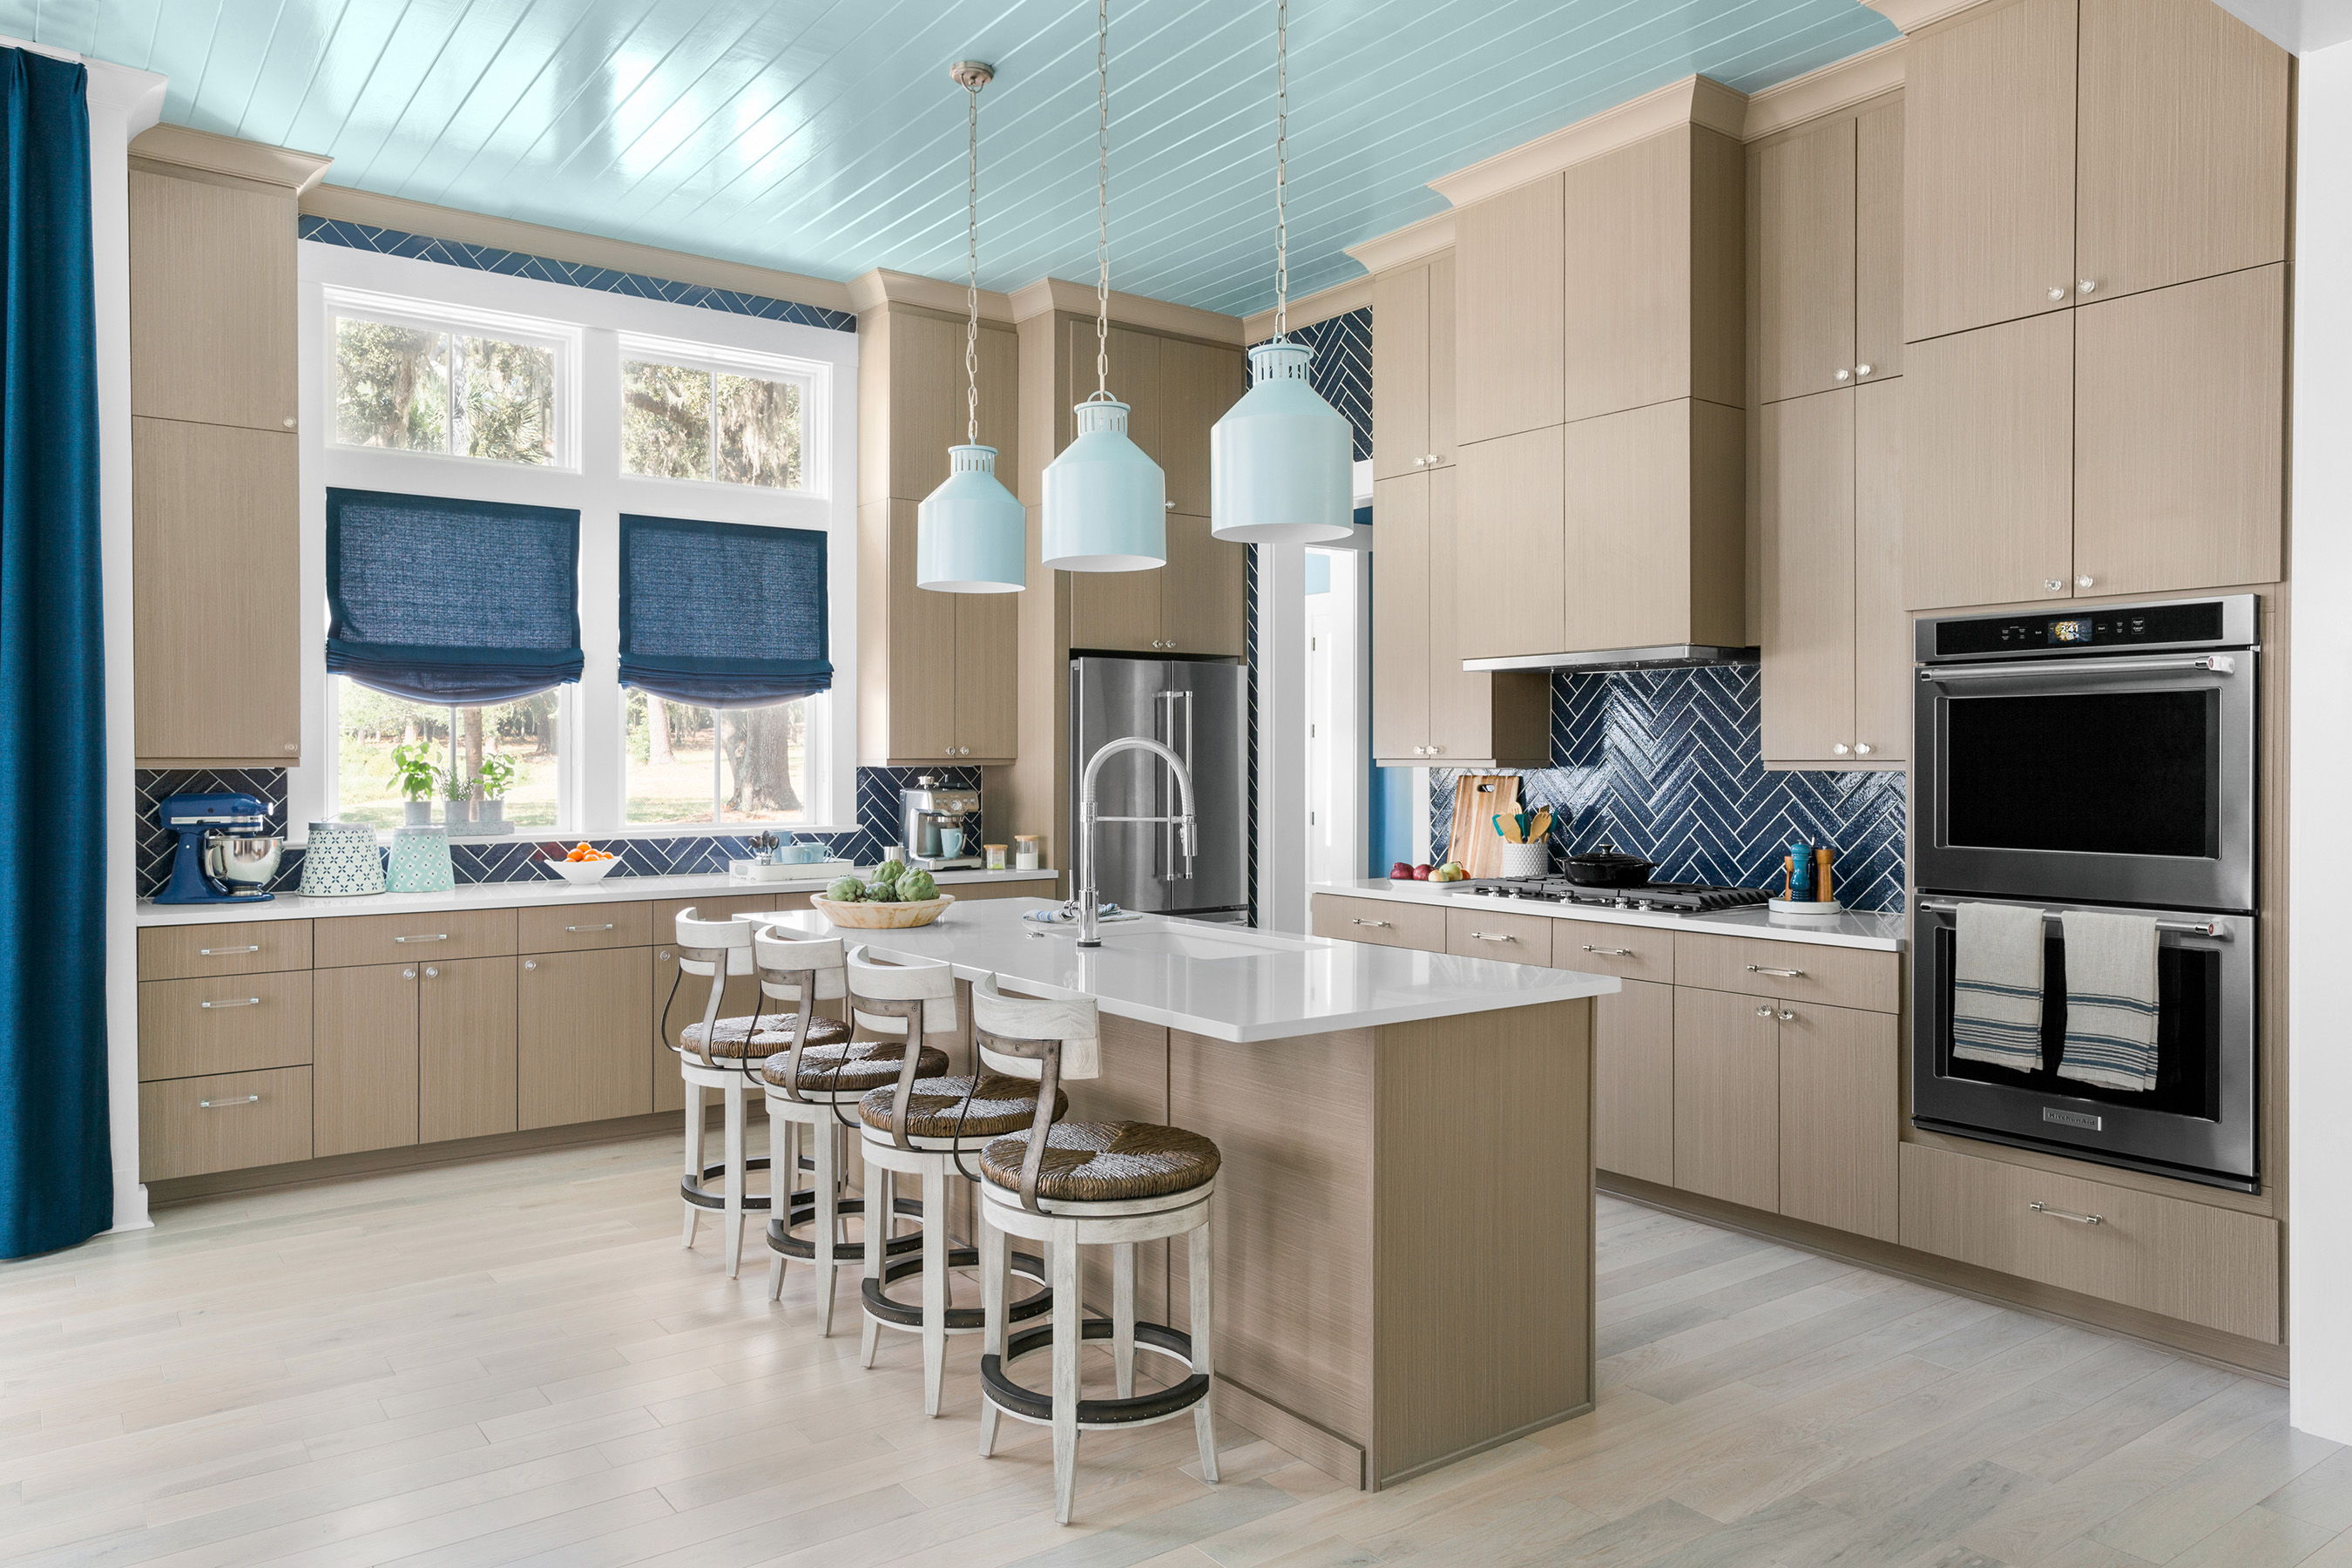 The HGTV Dream Home 2020 kitchen is a chef's dream and includes state-of-the-art professional appliances.